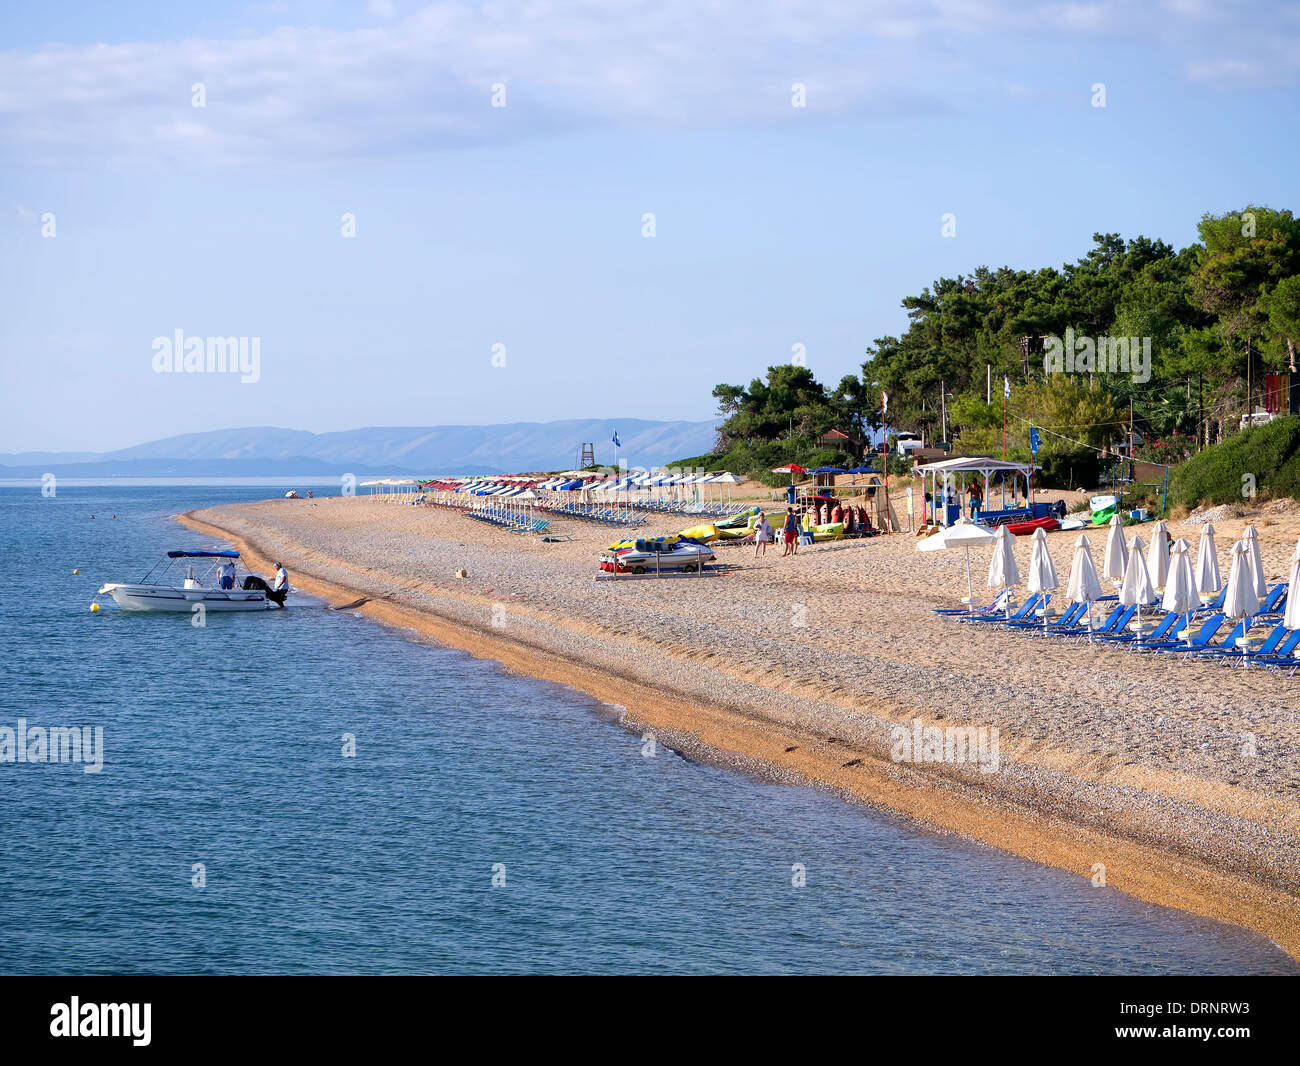 Skalas blue flag beach viewed from Captain Vangelis cruise boat on the Island of Kefalonia Greece - Stock Image